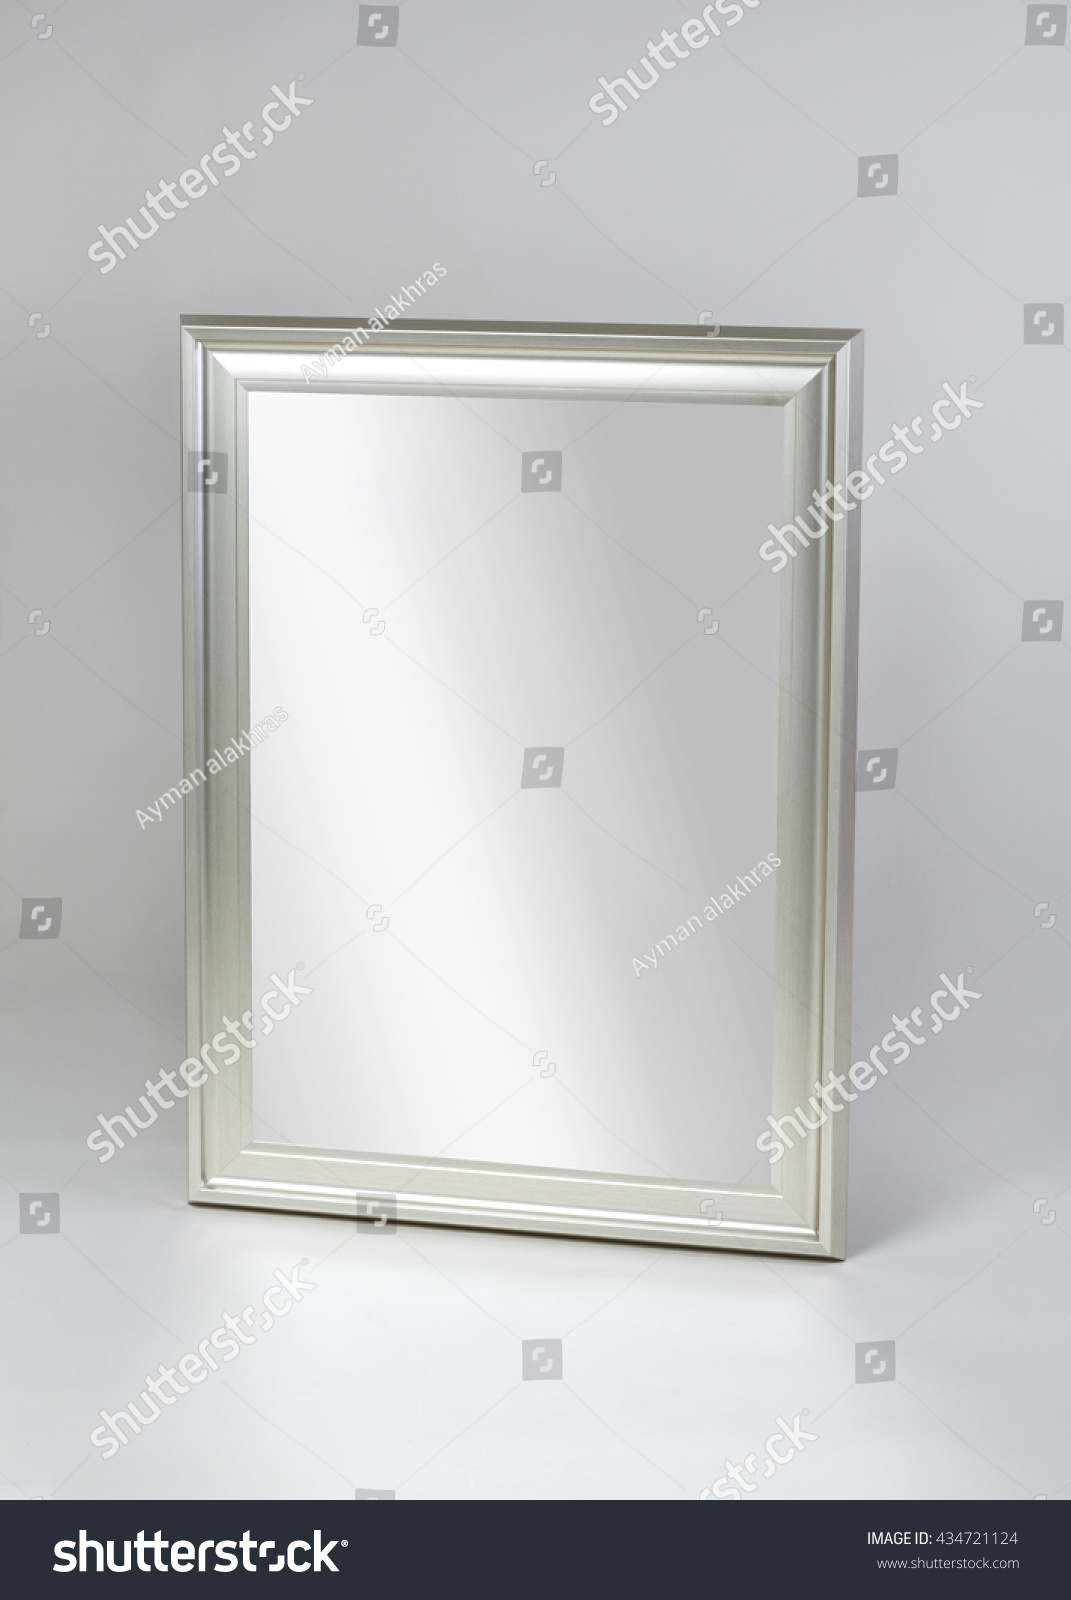 framed modern mirror. Small Silver Framed Modern Mirror Isolated On Gray Background R